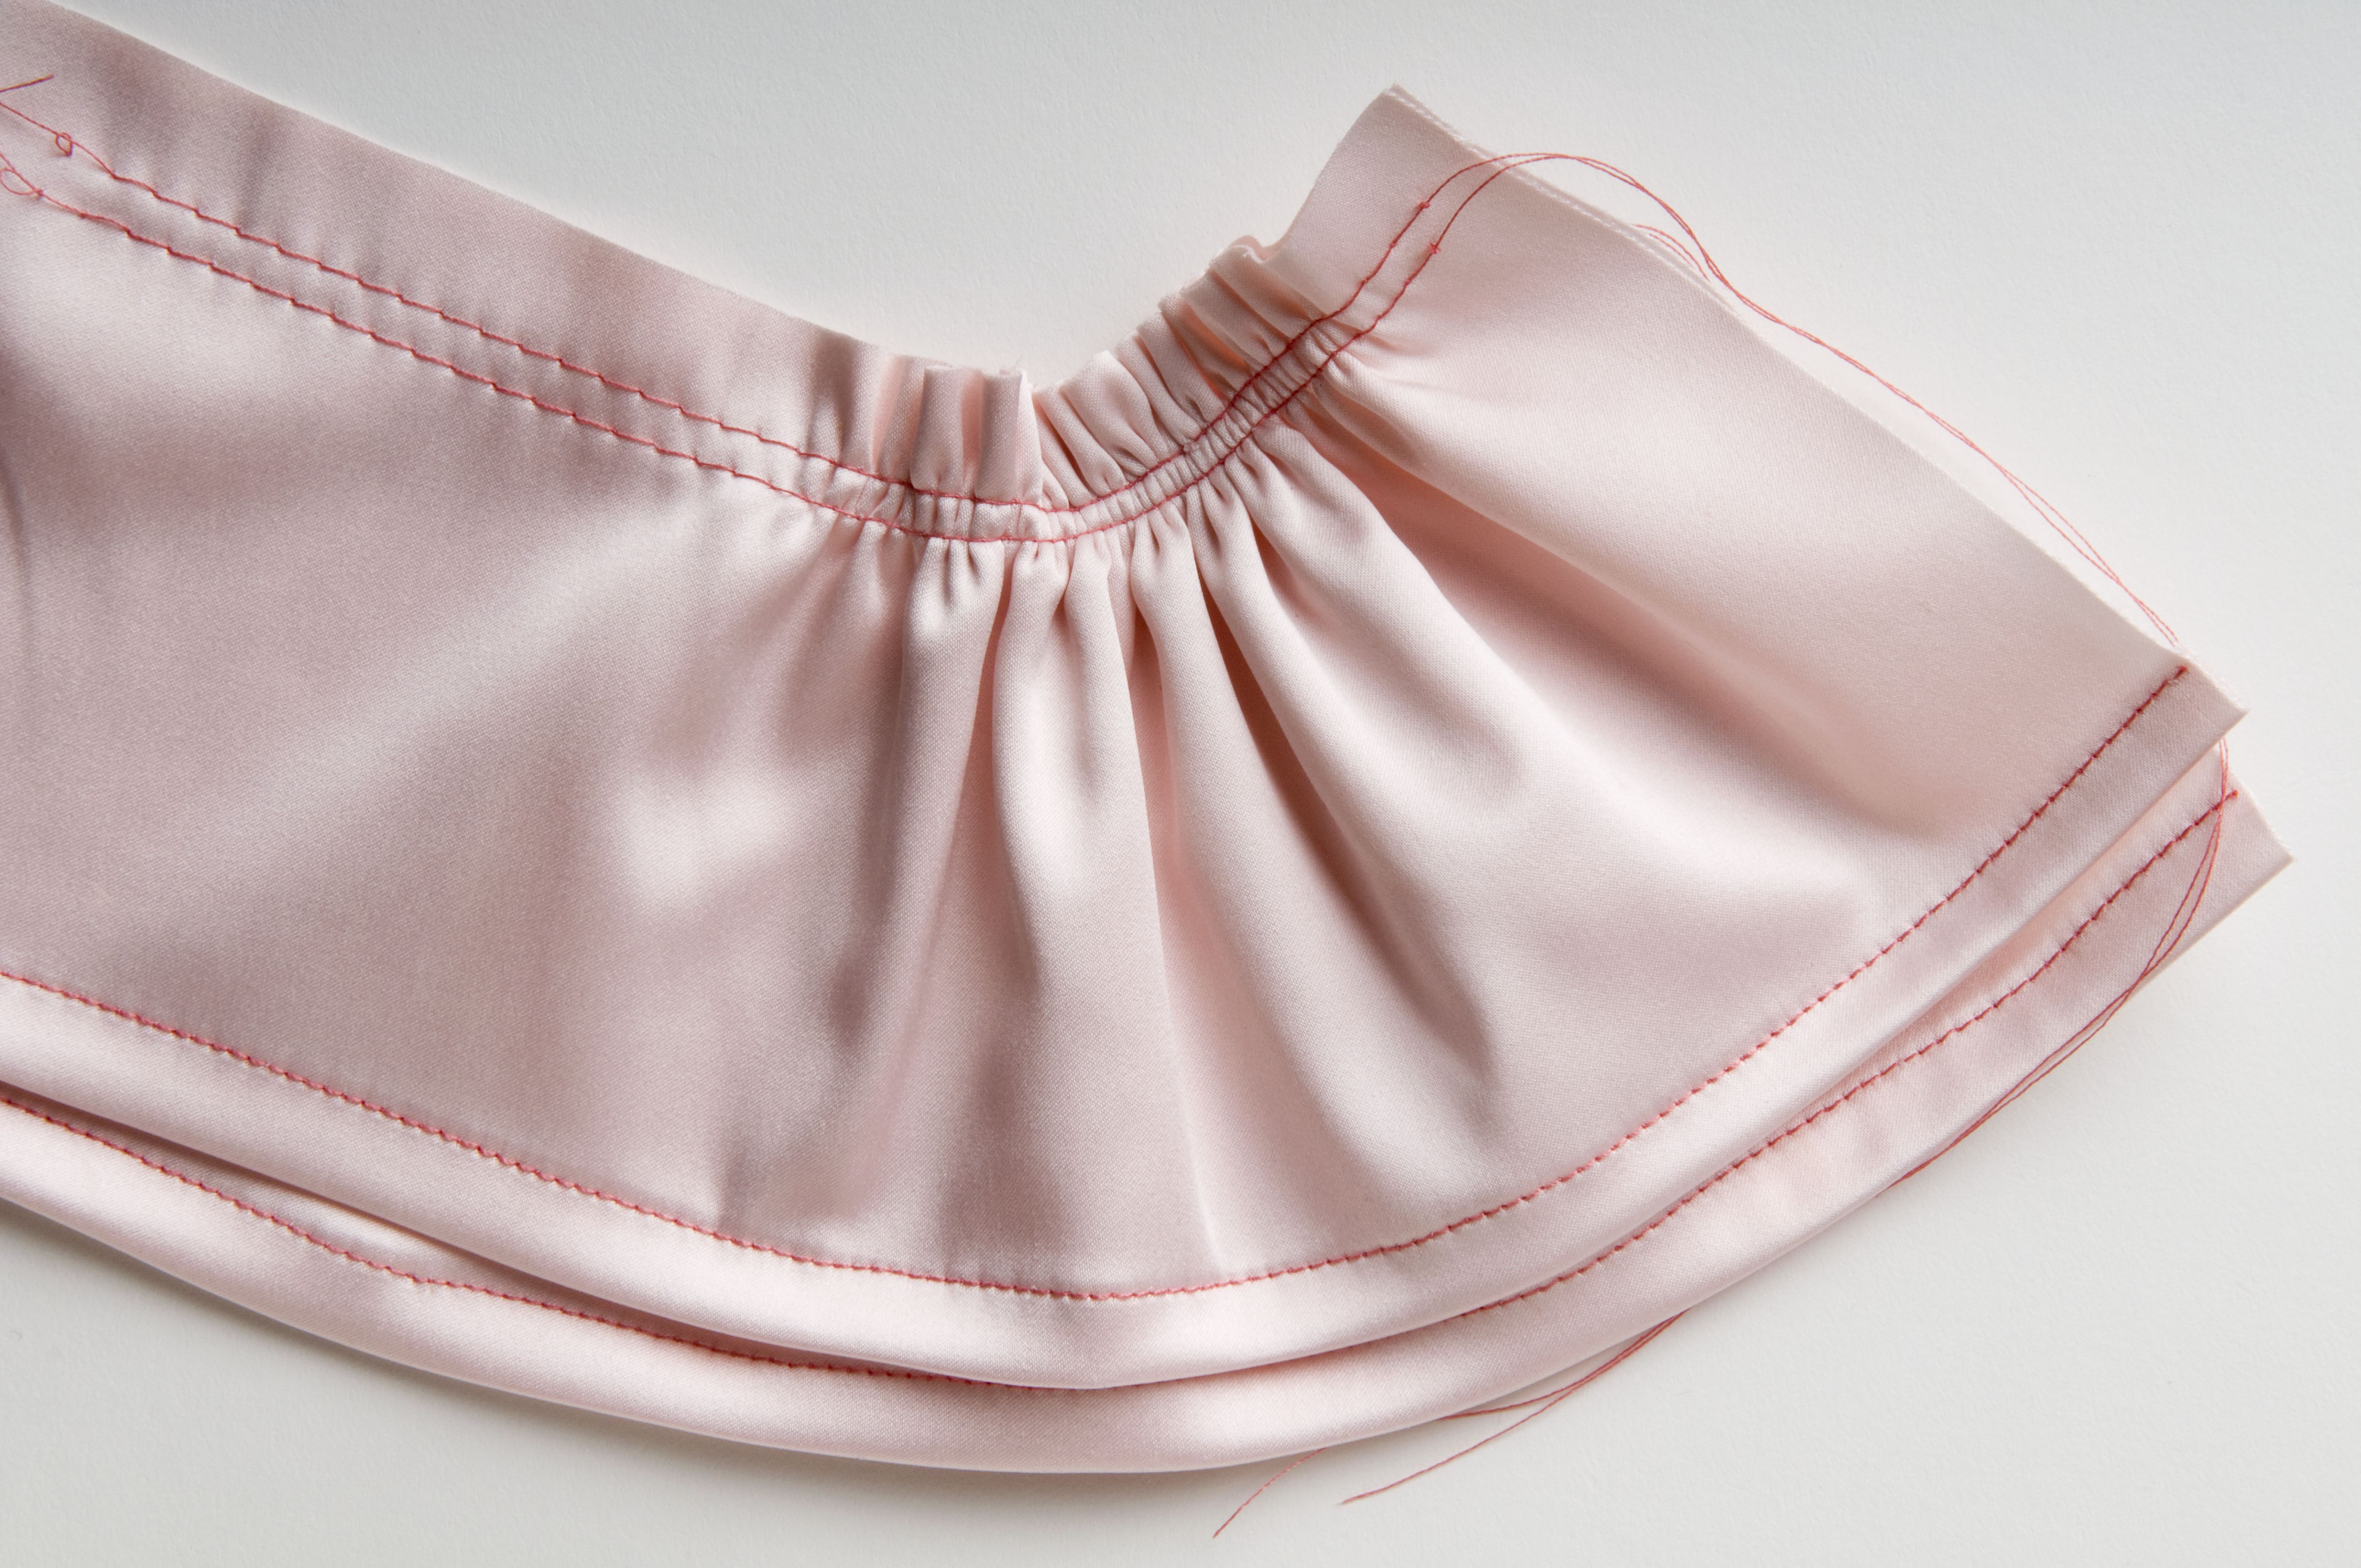 Double ruffle with two rows of gather stitches at top edge and single row of stitches on bottom edge of pink fabric